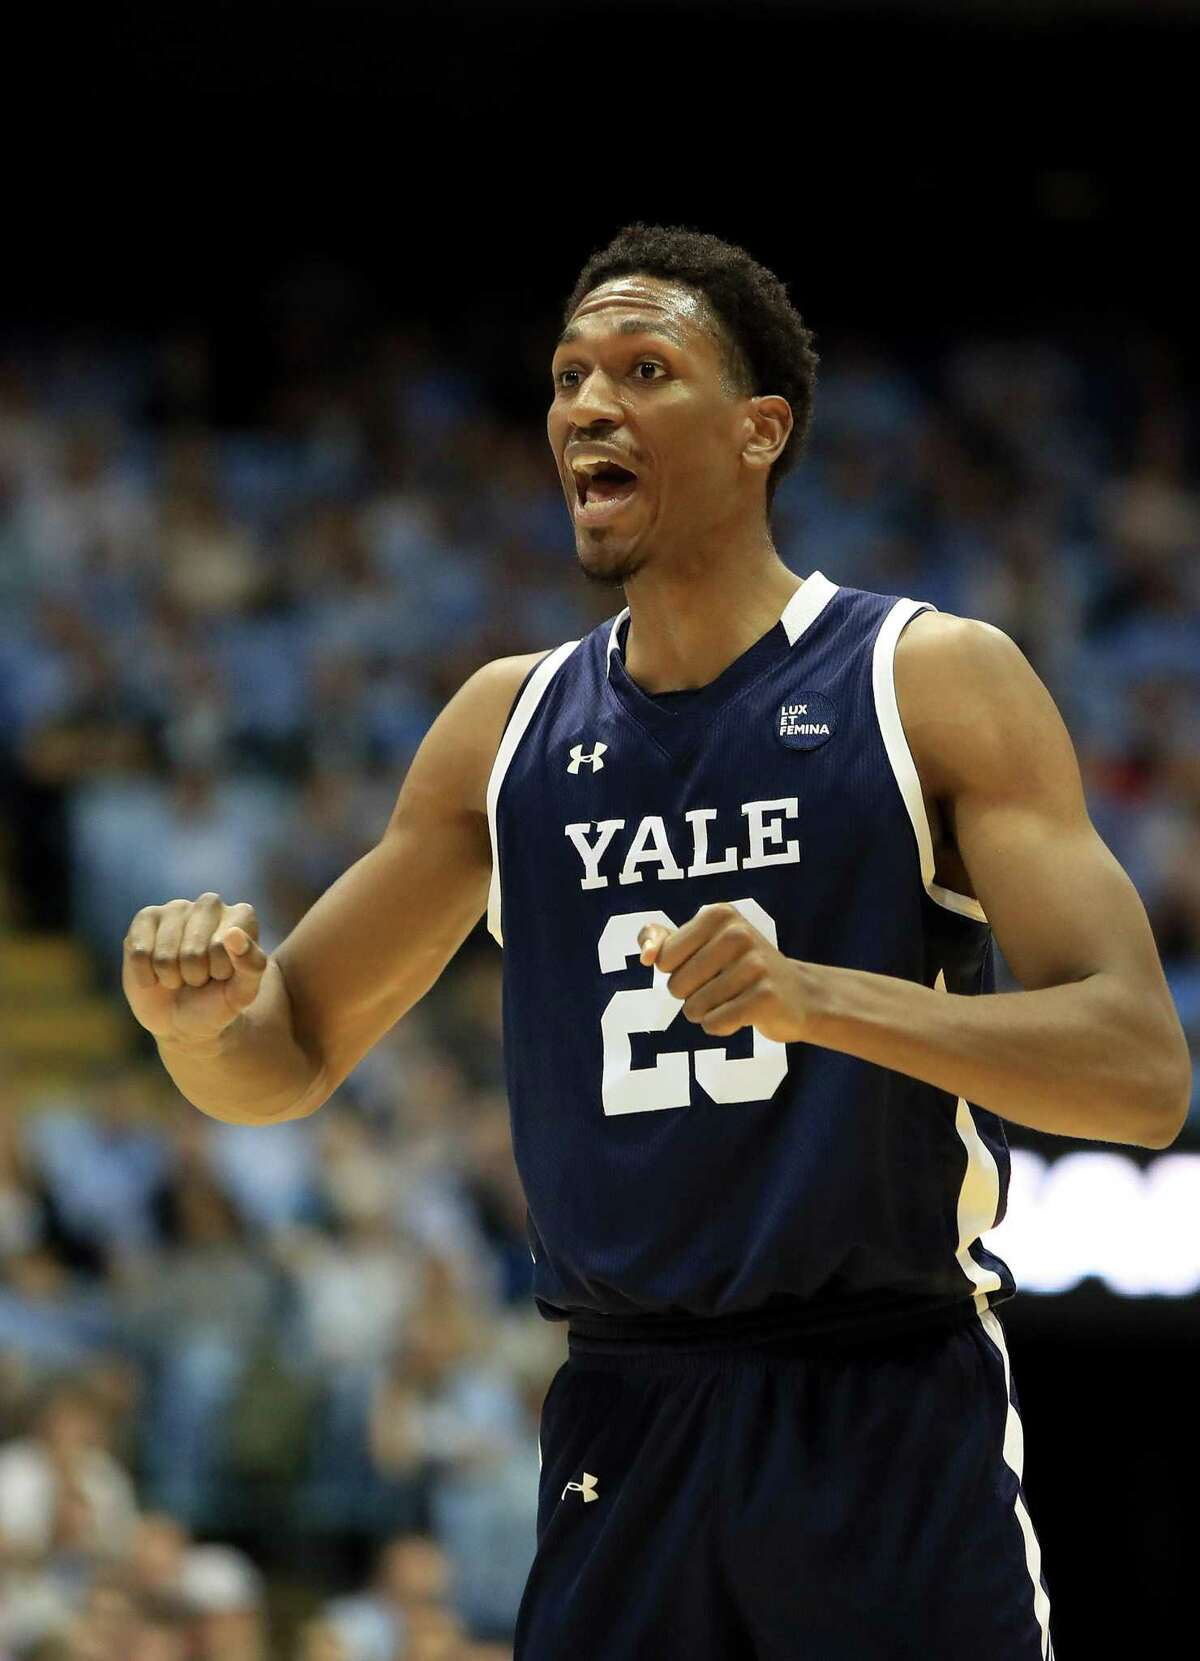 Yale's All-Ivy League forward Jordan Bruner is planning to enter the 2020 NBA Draft.